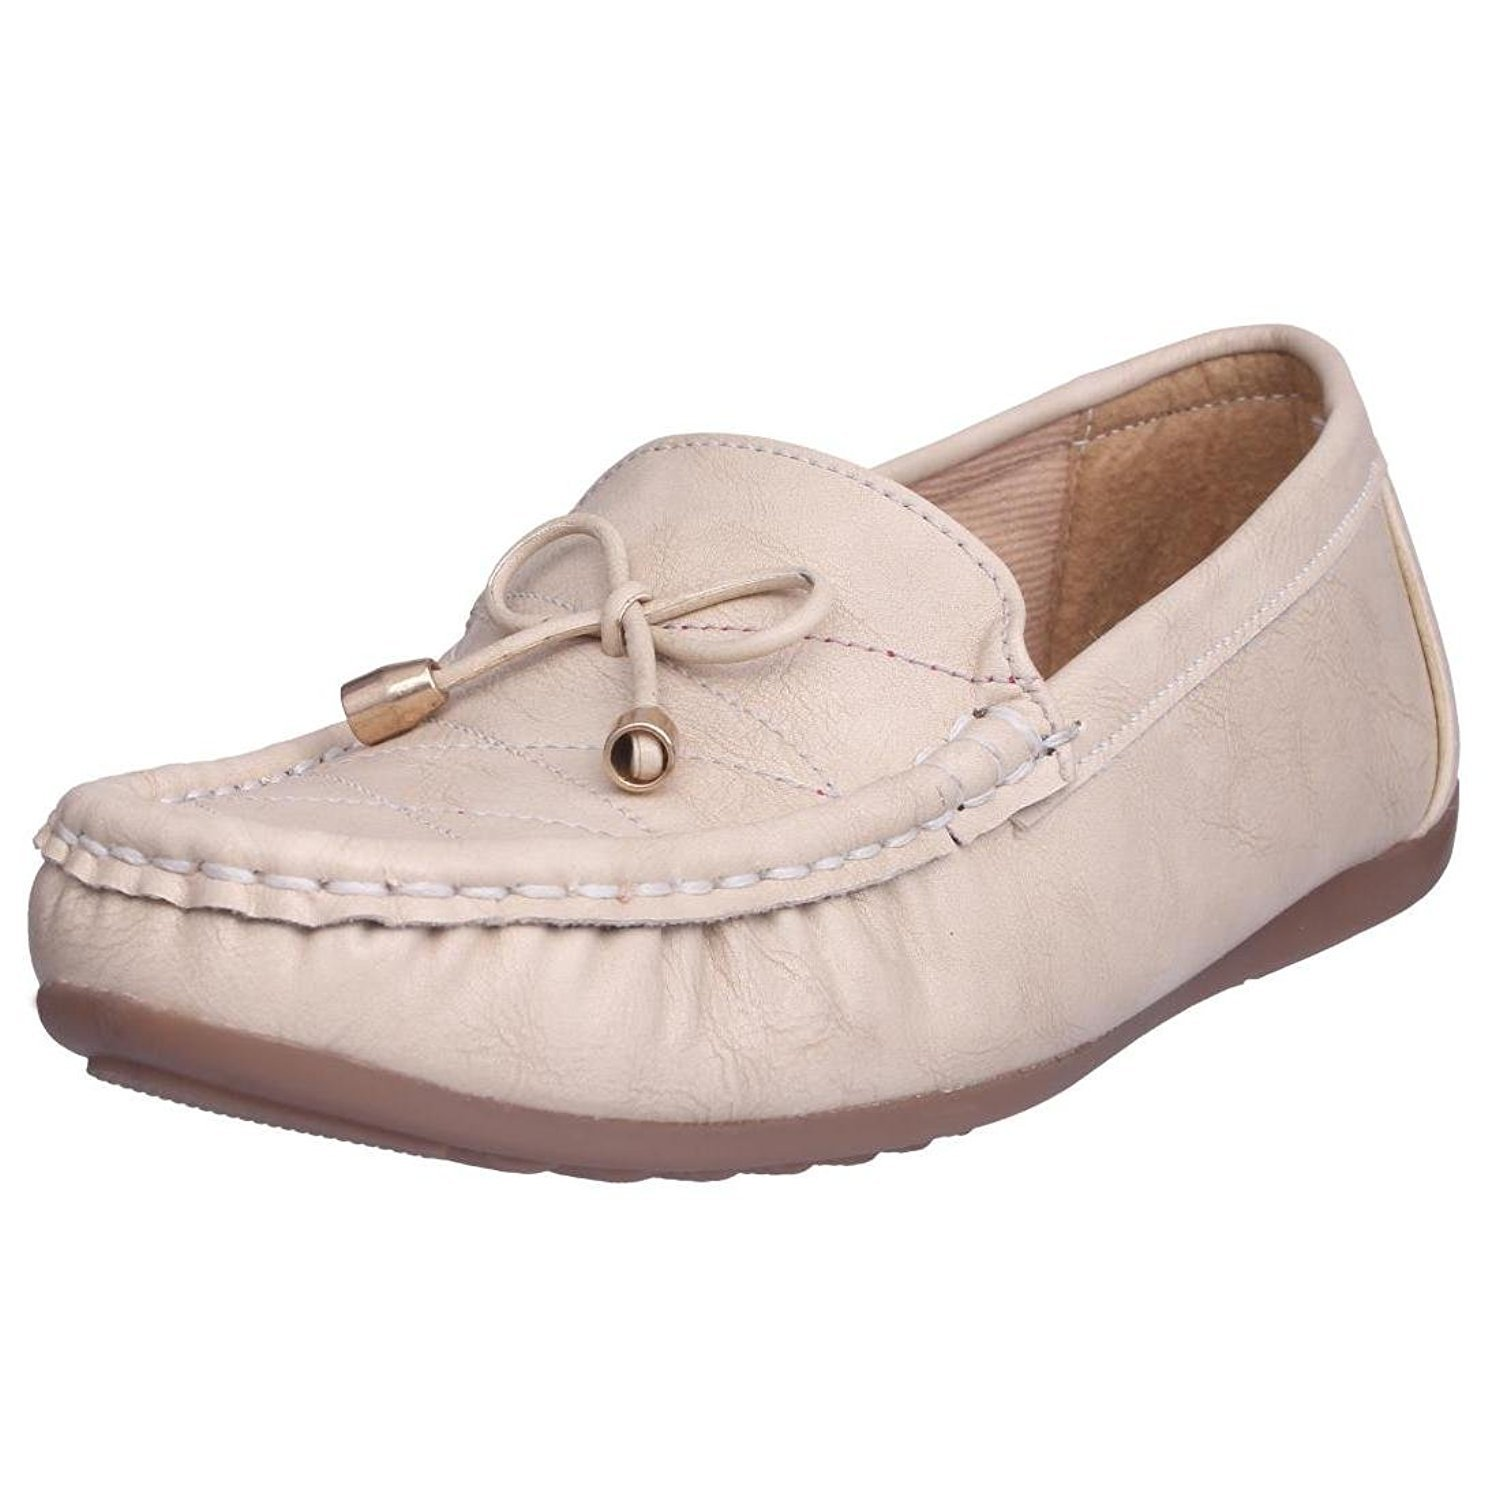 d279c457dc Ethics Best Combo Pack Crazy Collection 2 Loafers   Stylish Sneaker Shoes  for Women (40 EU)  Buy Online at Low Prices in India - Amazon.in